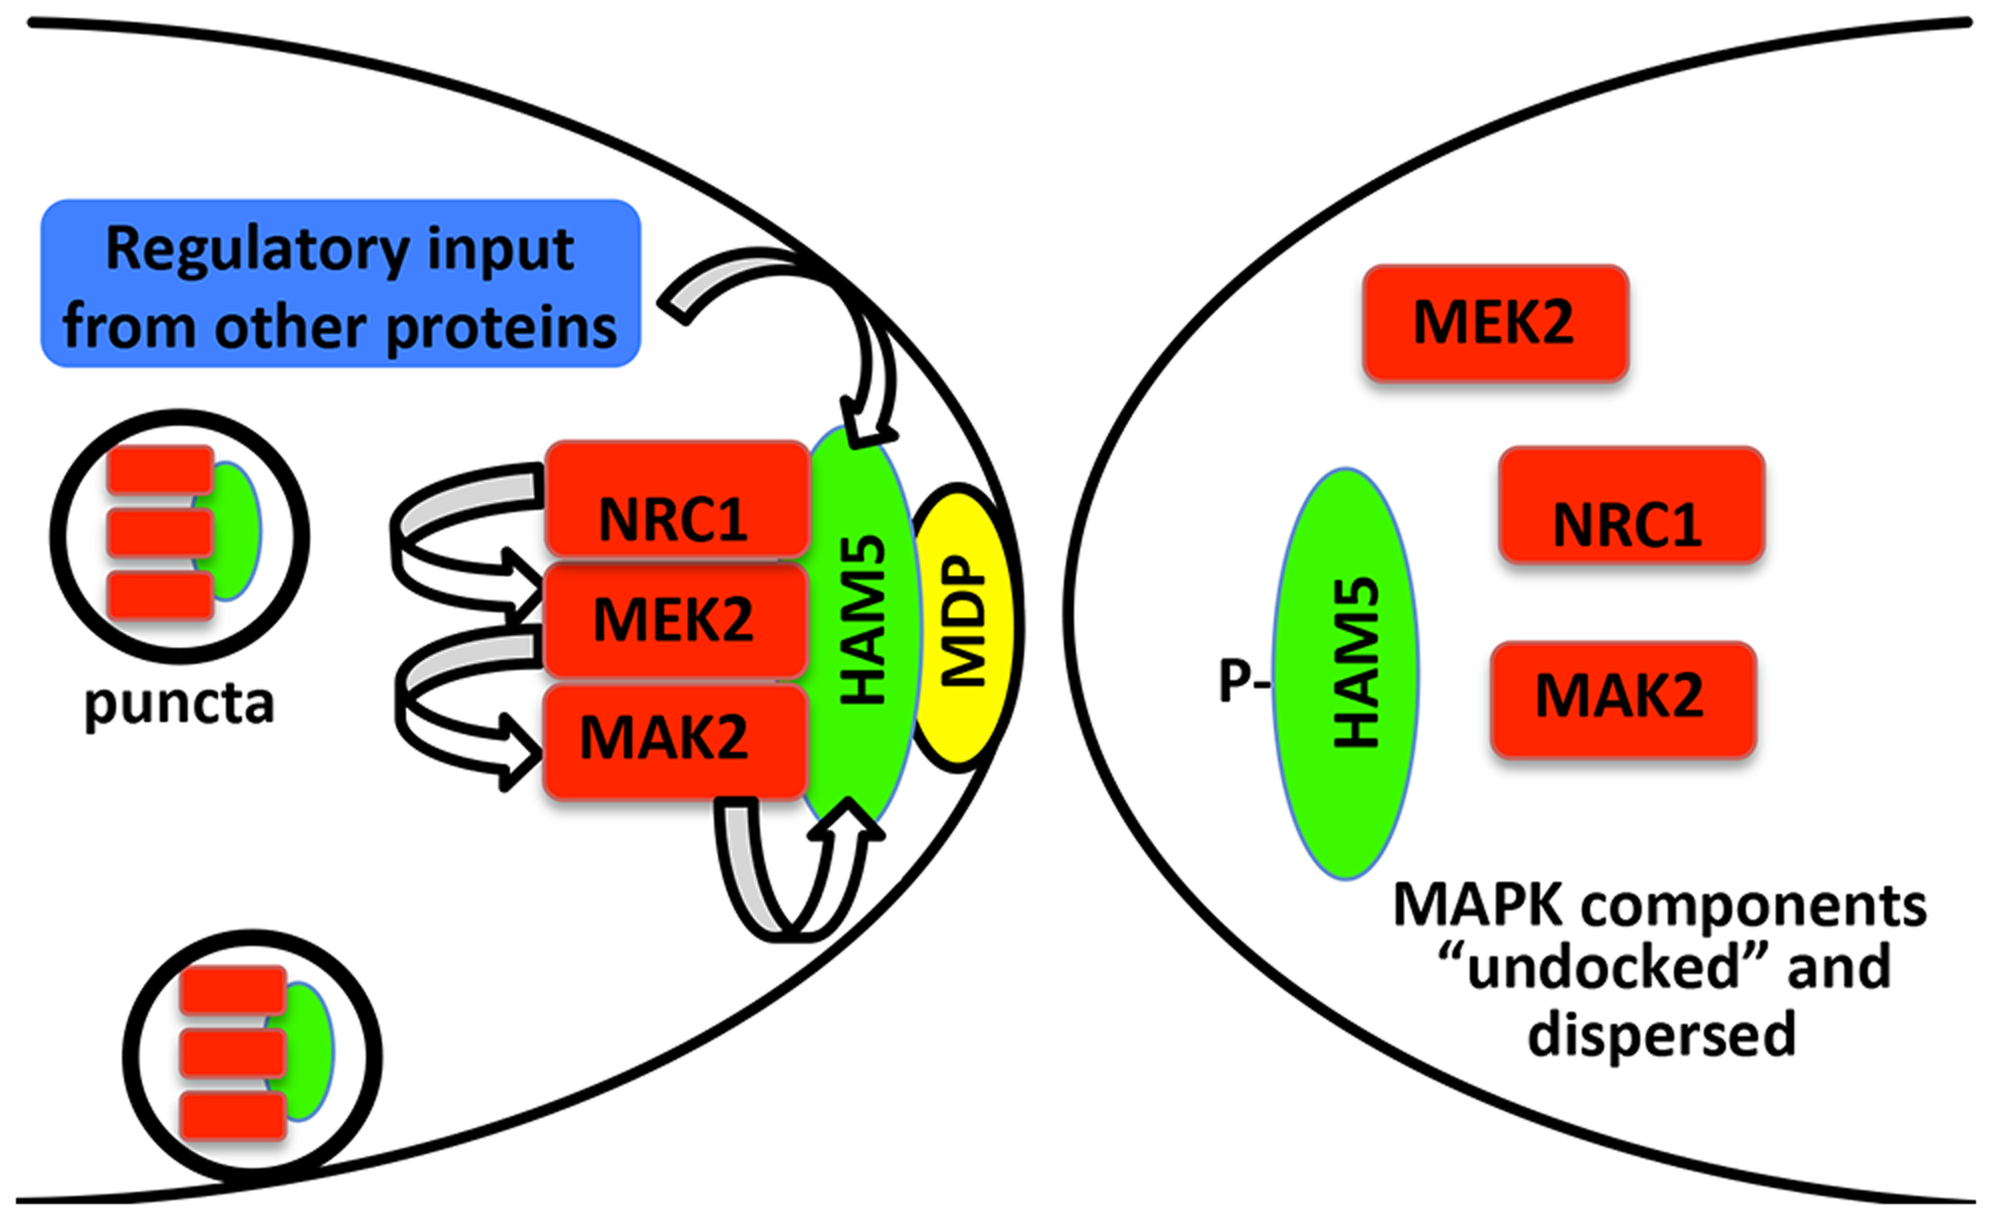 Model for HAM-5-MAK-2/MEK-2/NRC-1 function during chemotropic interactions.